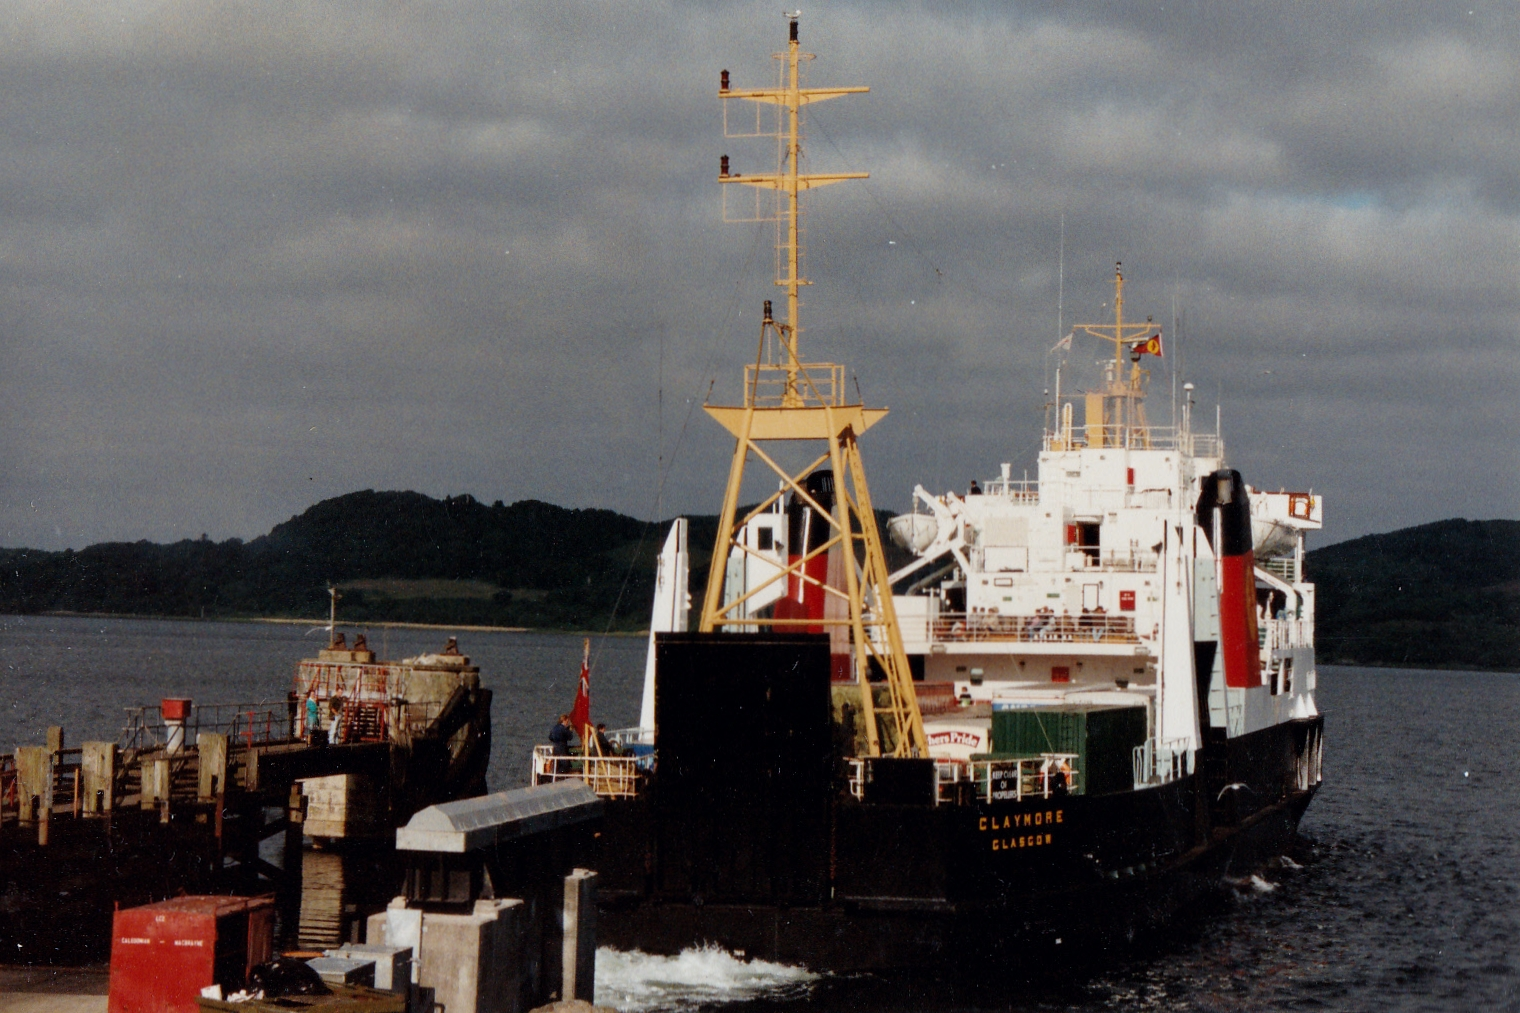 Claymore leaving Kennacraig (Jim Aikman Smith)